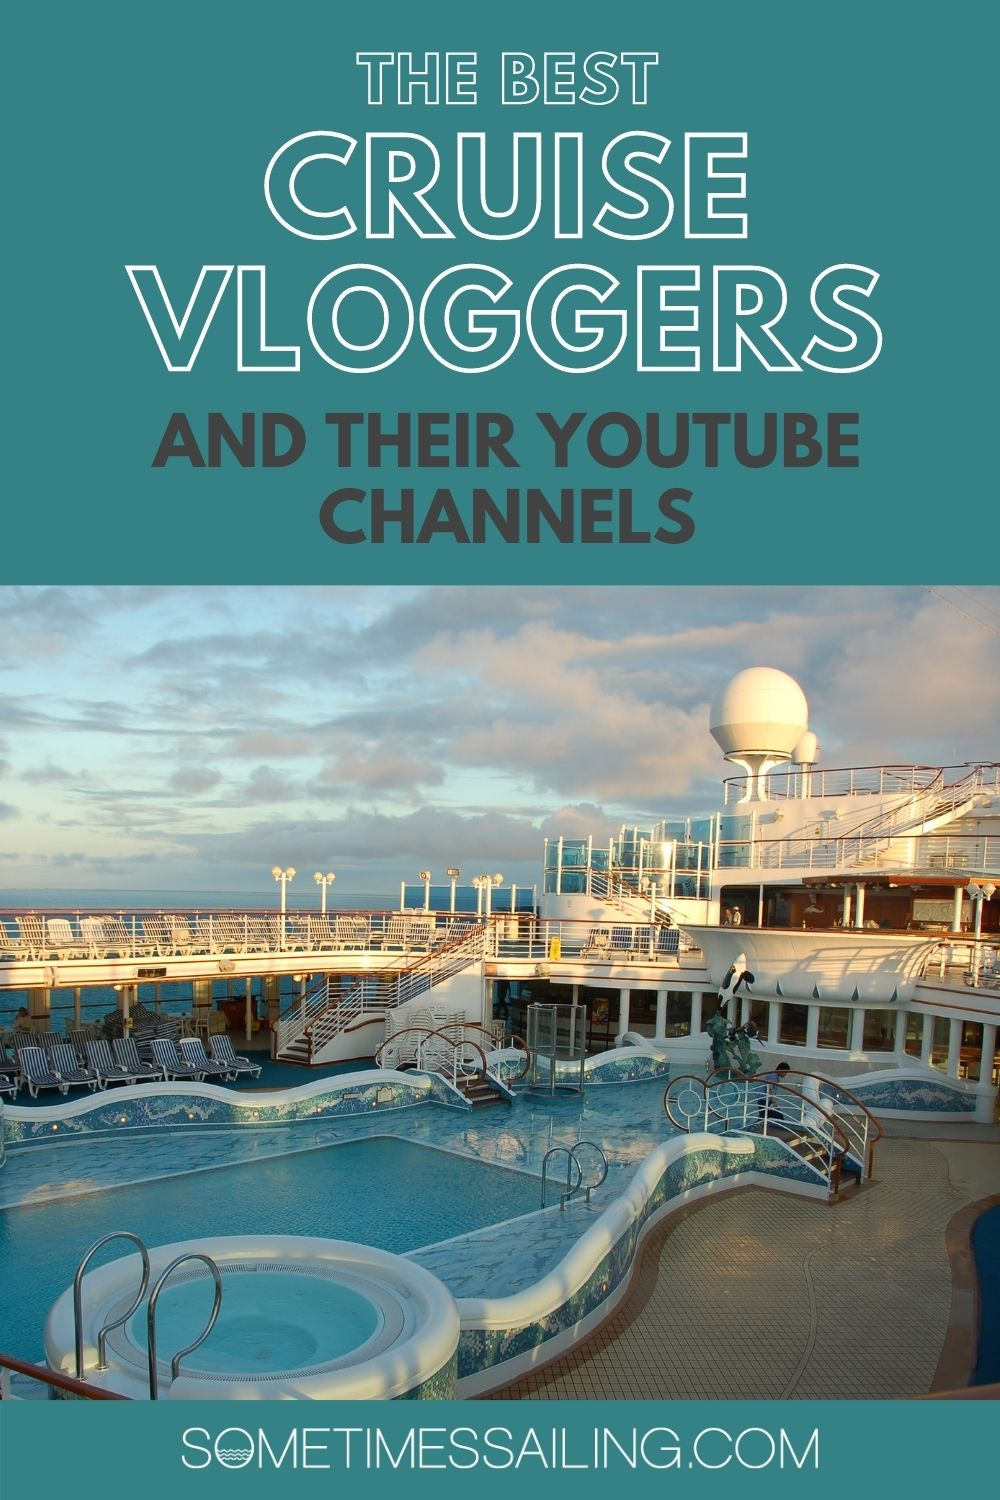 Best cruise vloggers and their YouTube channels with an image of a pool deck on a cruise ship.